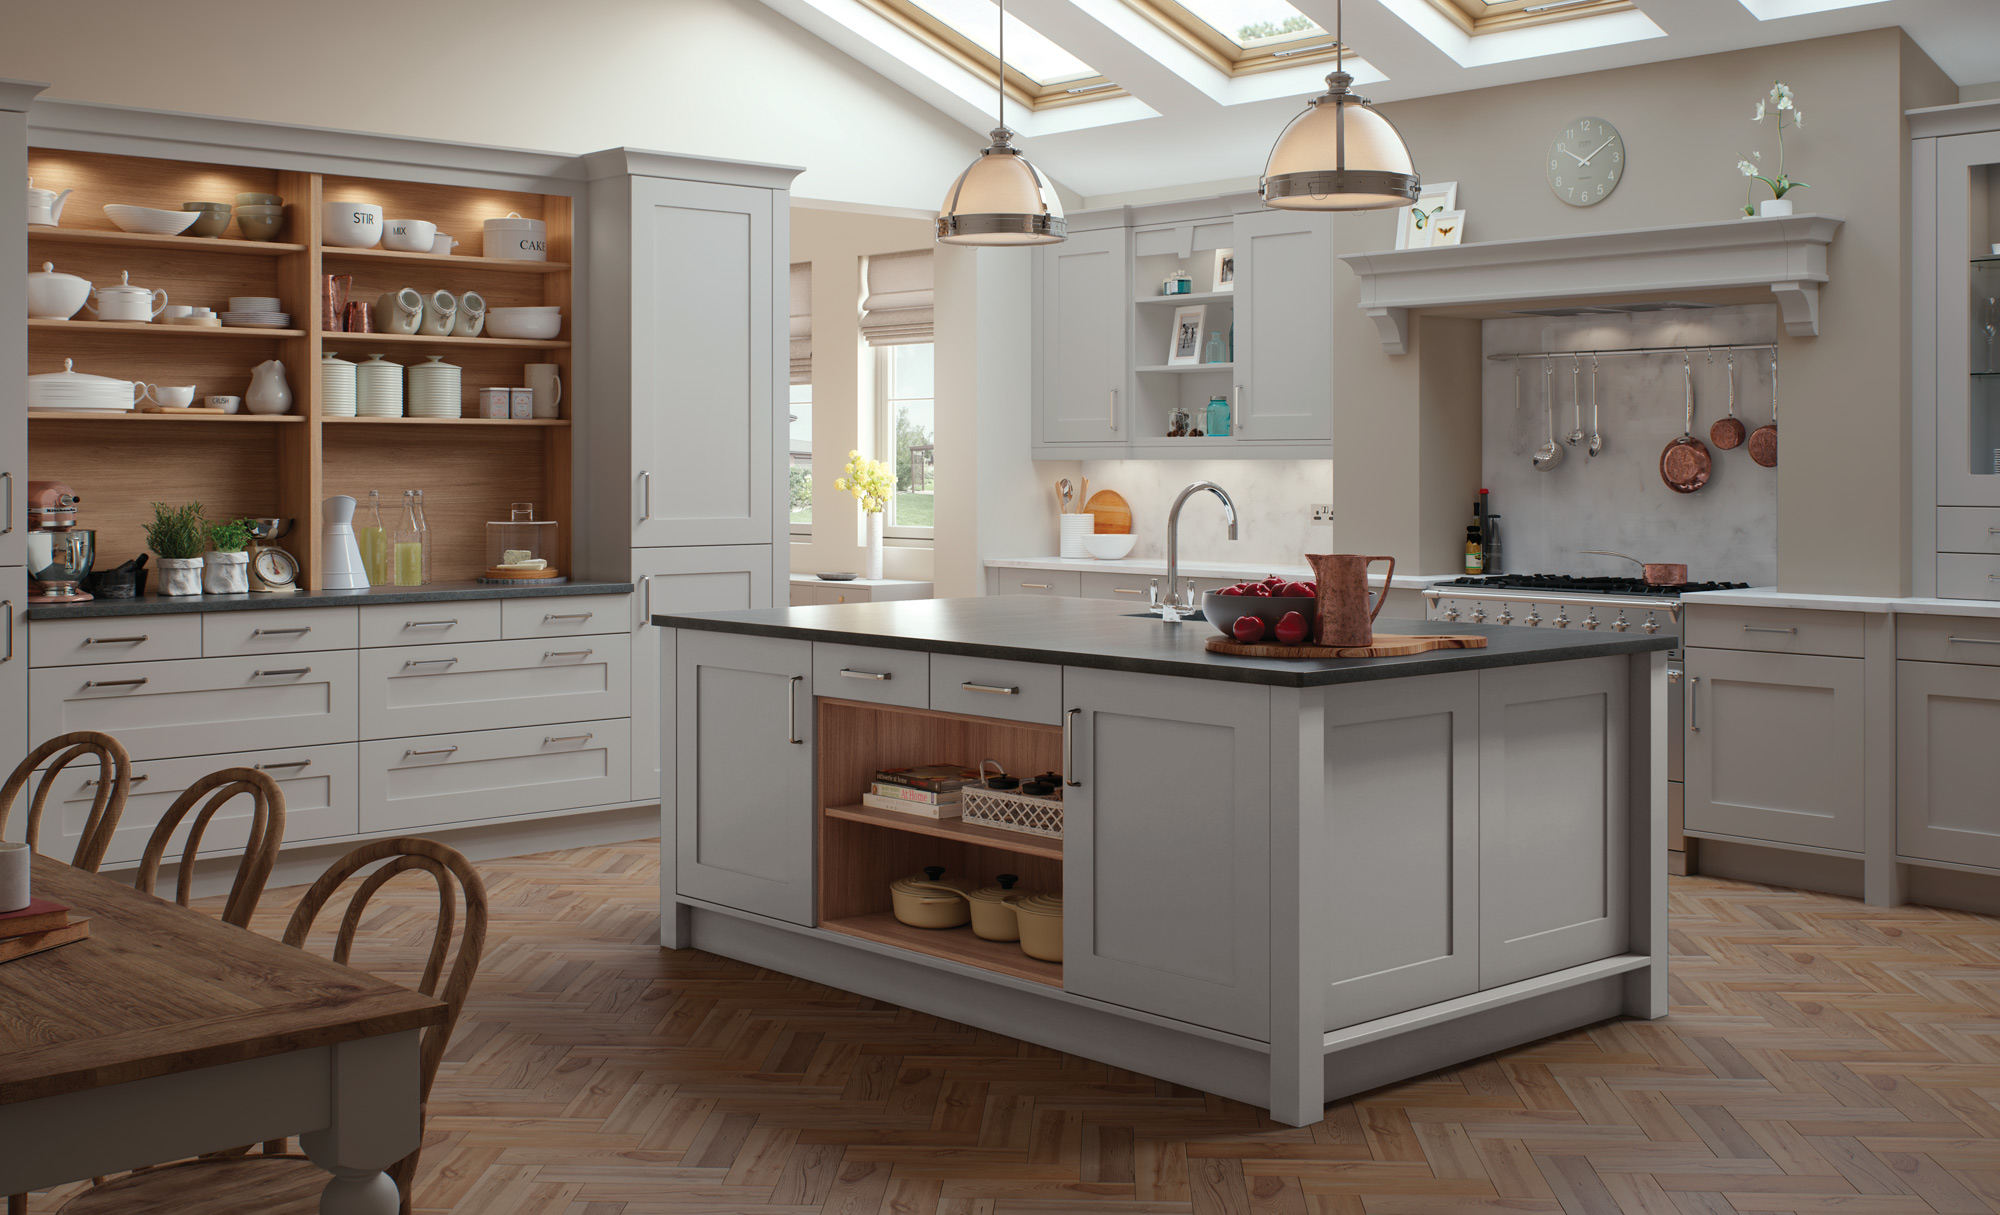 Kitchen Design Ideas To Give It A Little Tlc Treat The Heart Of